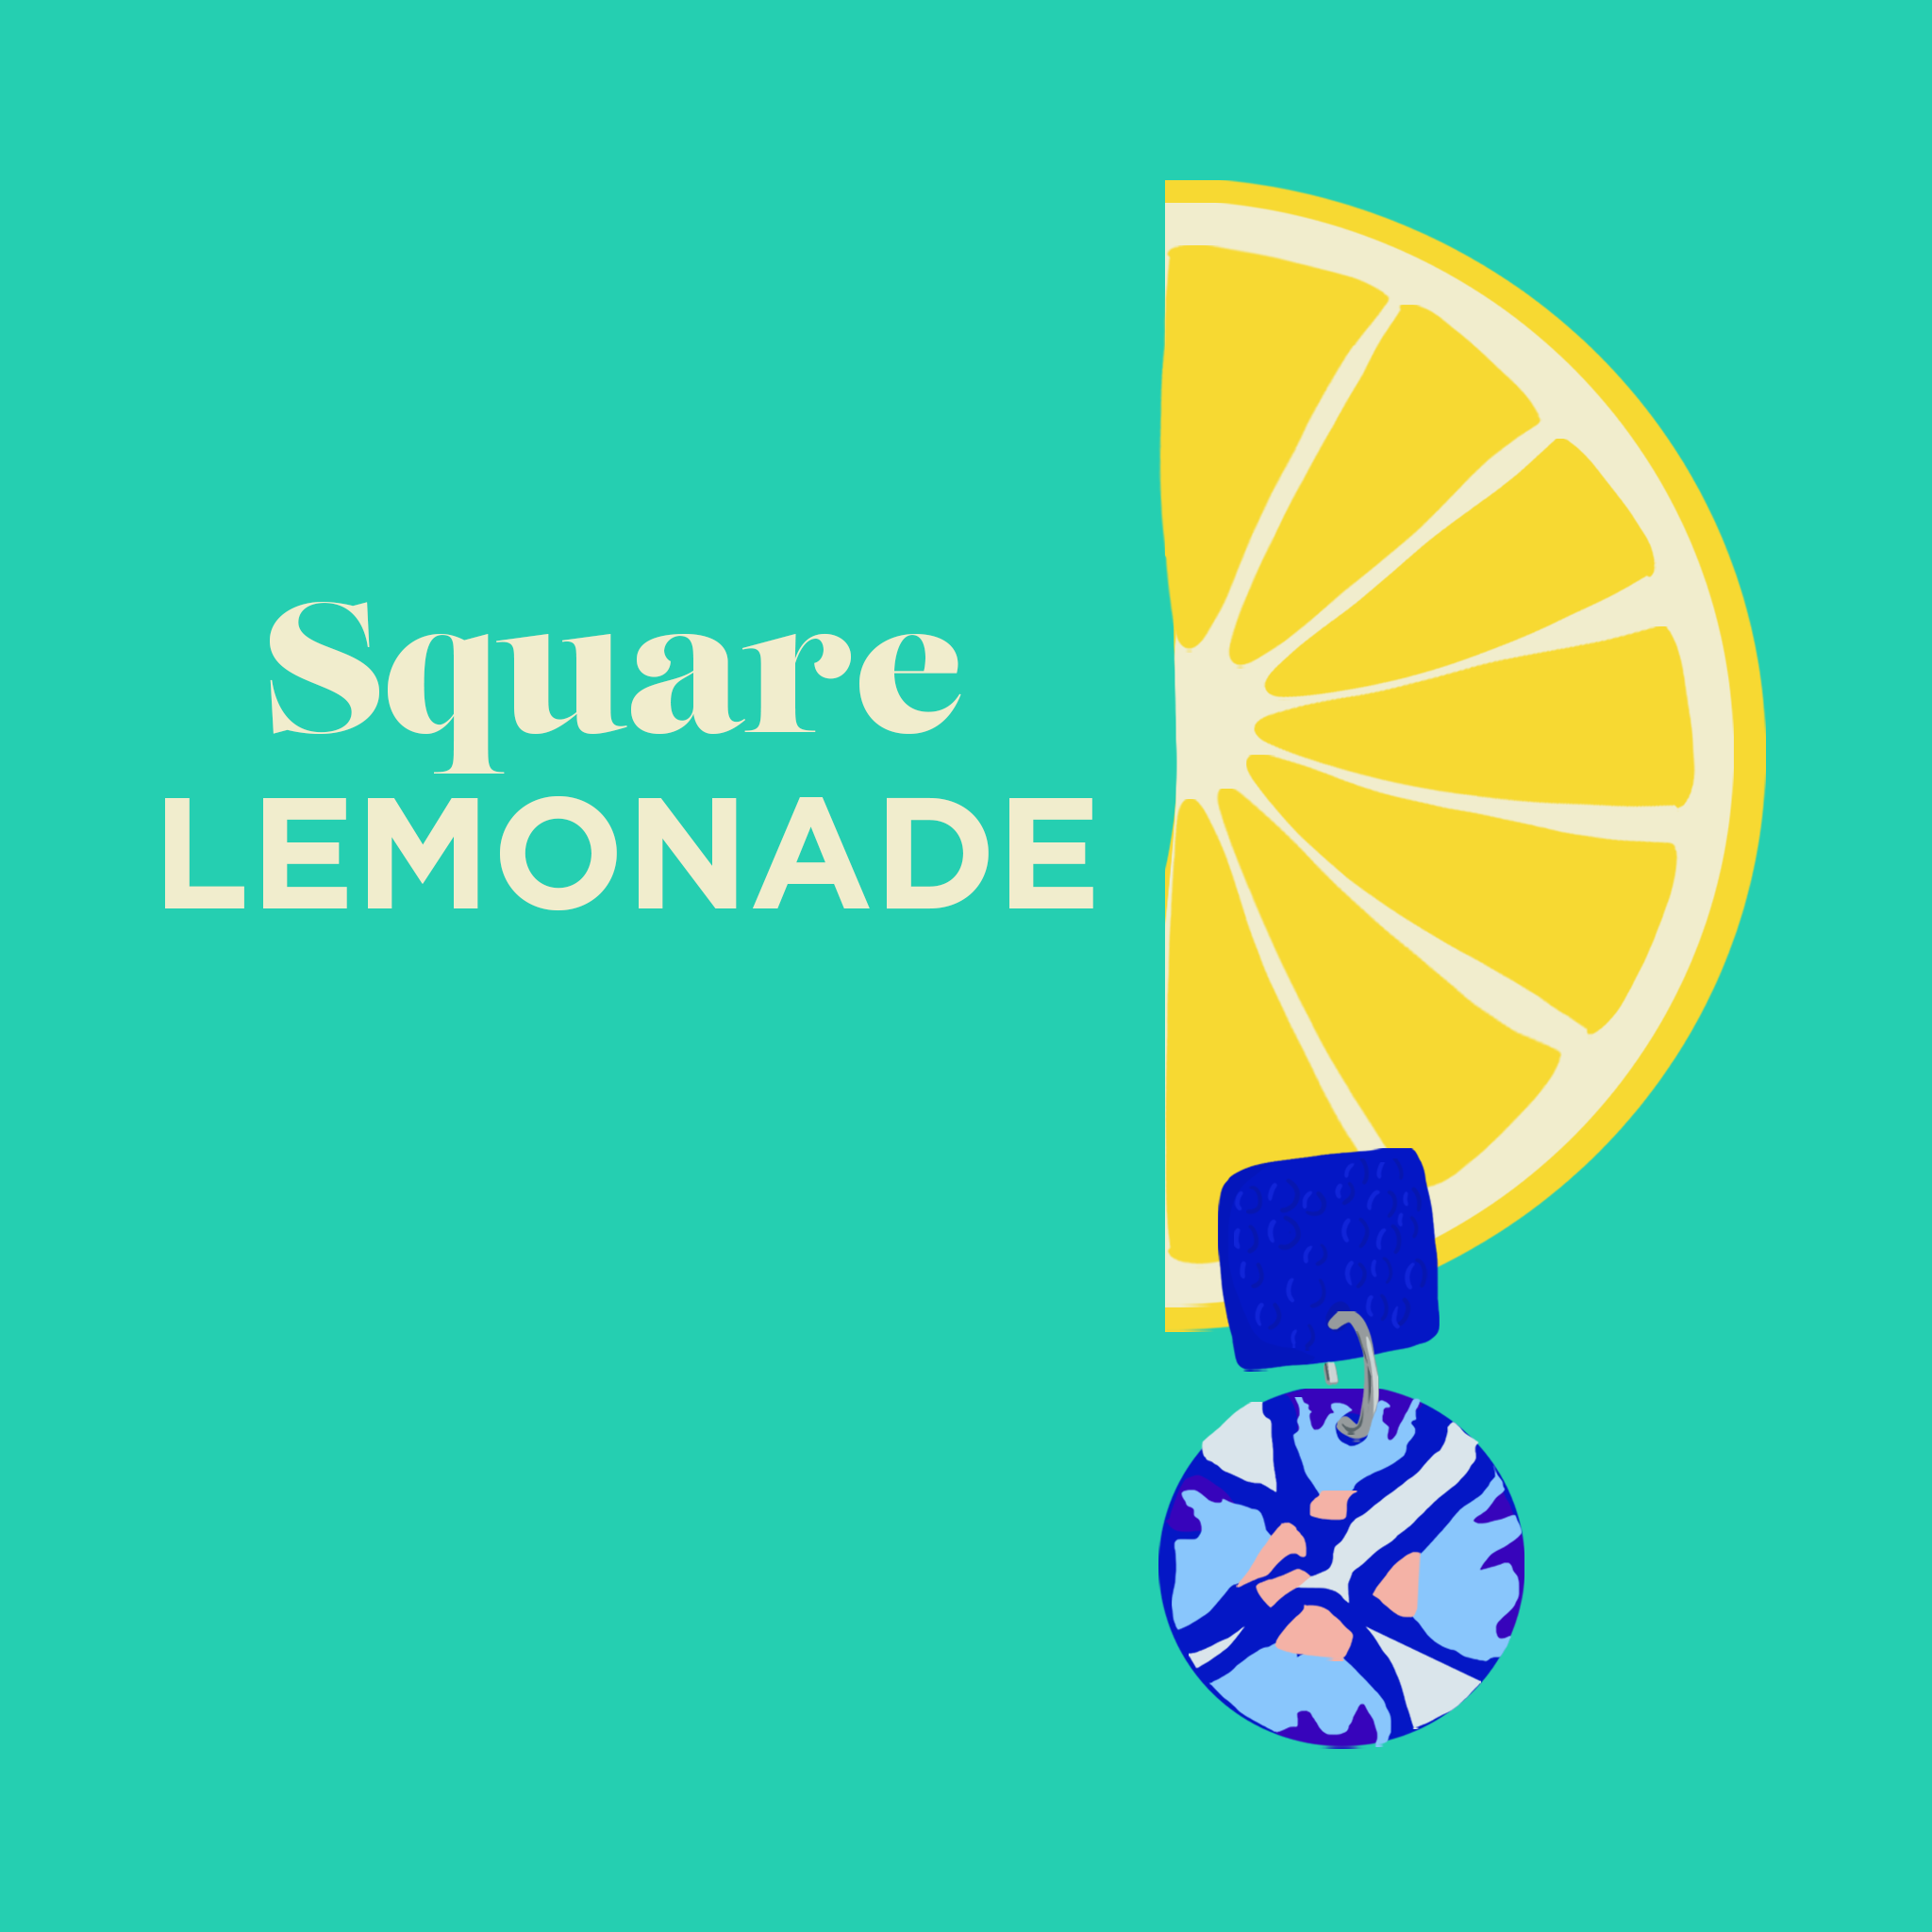 Square Lemonade